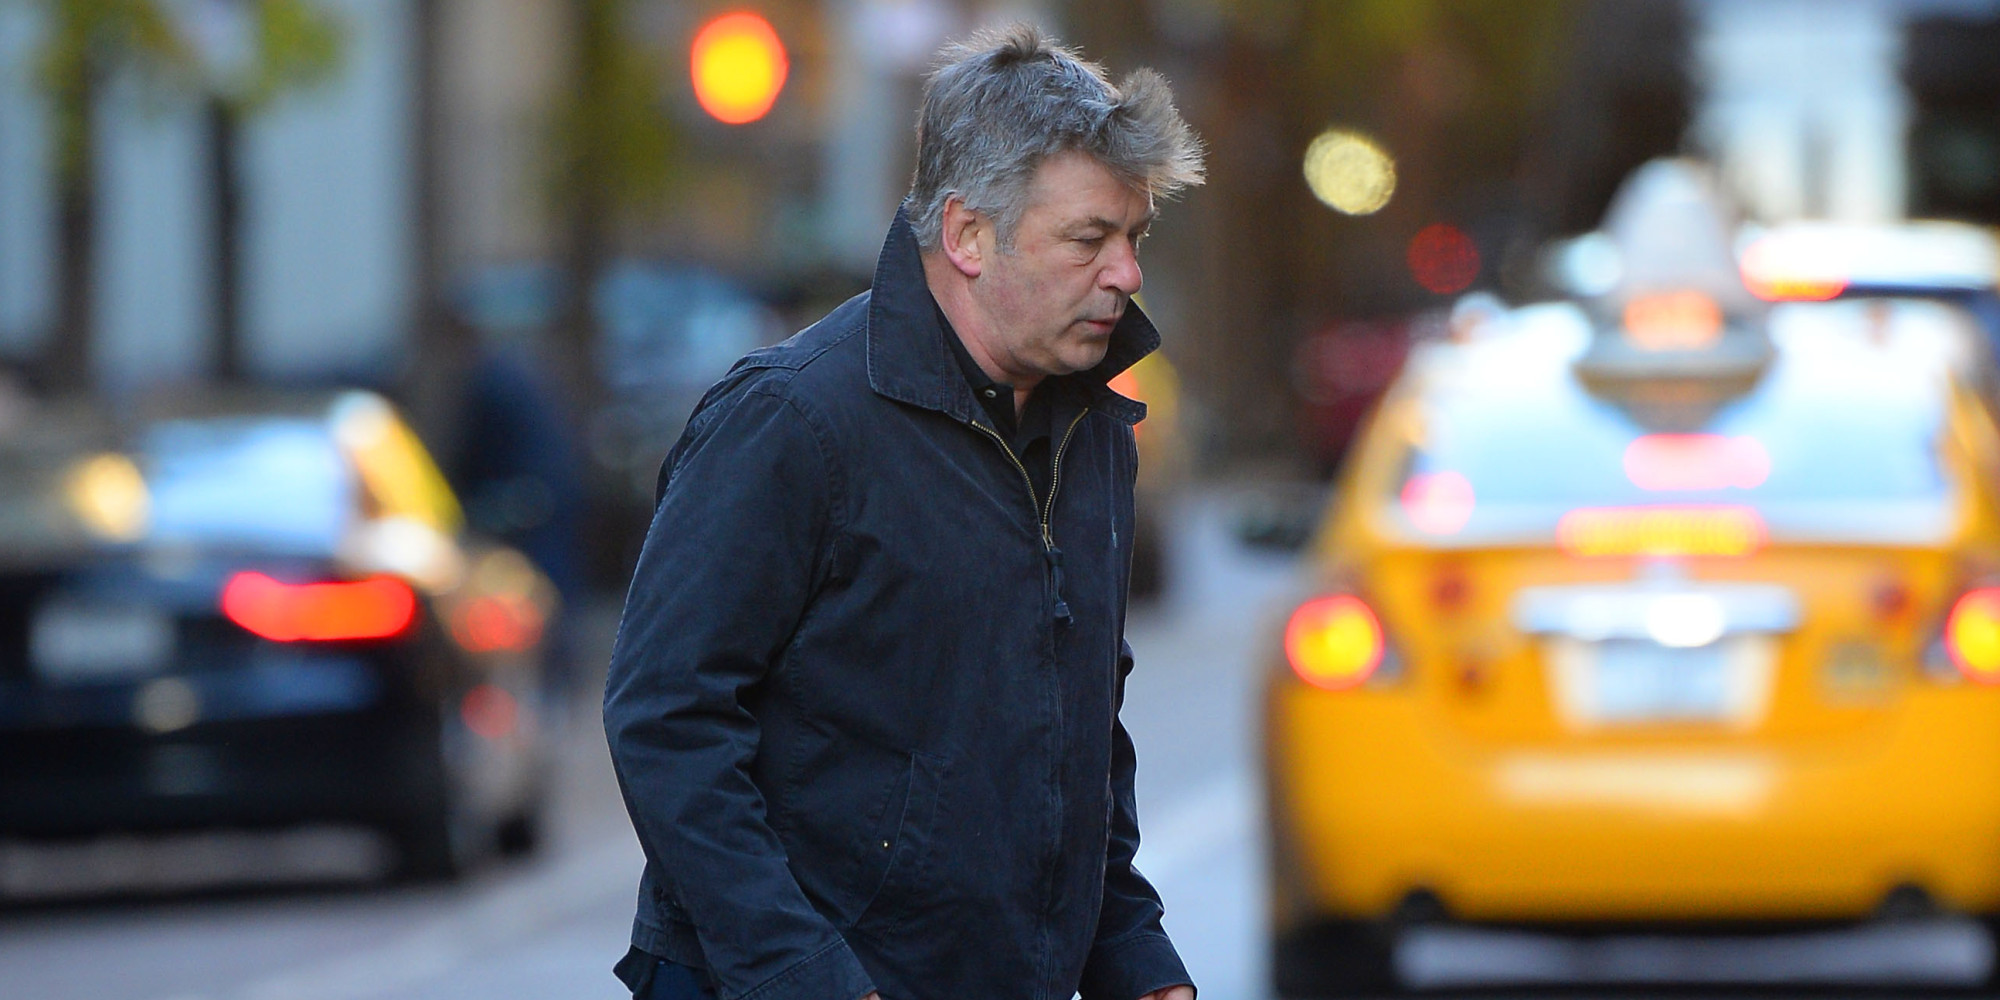 Alec Baldwin 'Assaults' Reporter And Knocks His Phone To ... Alec Baldwin Facebook